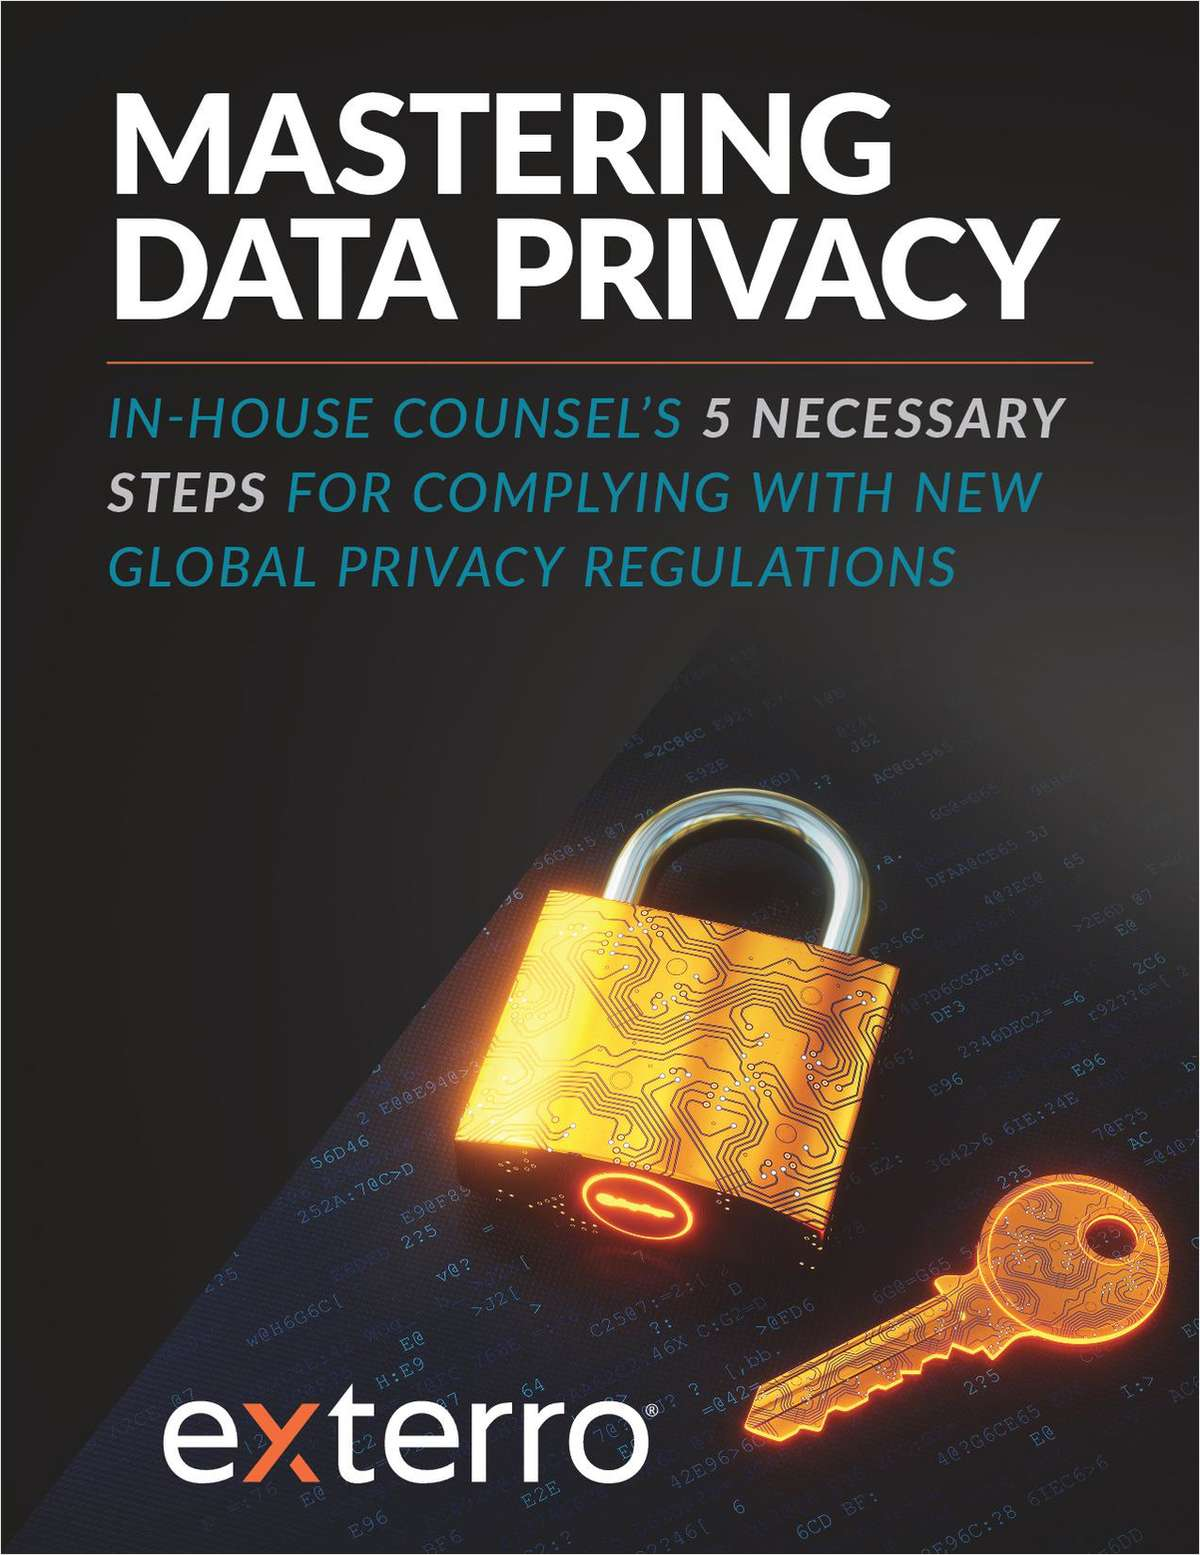 In-House Counsel's five necessary steps for complying with new global privacy regulations. Download this guide to learn more and how to master your data privacy processes.